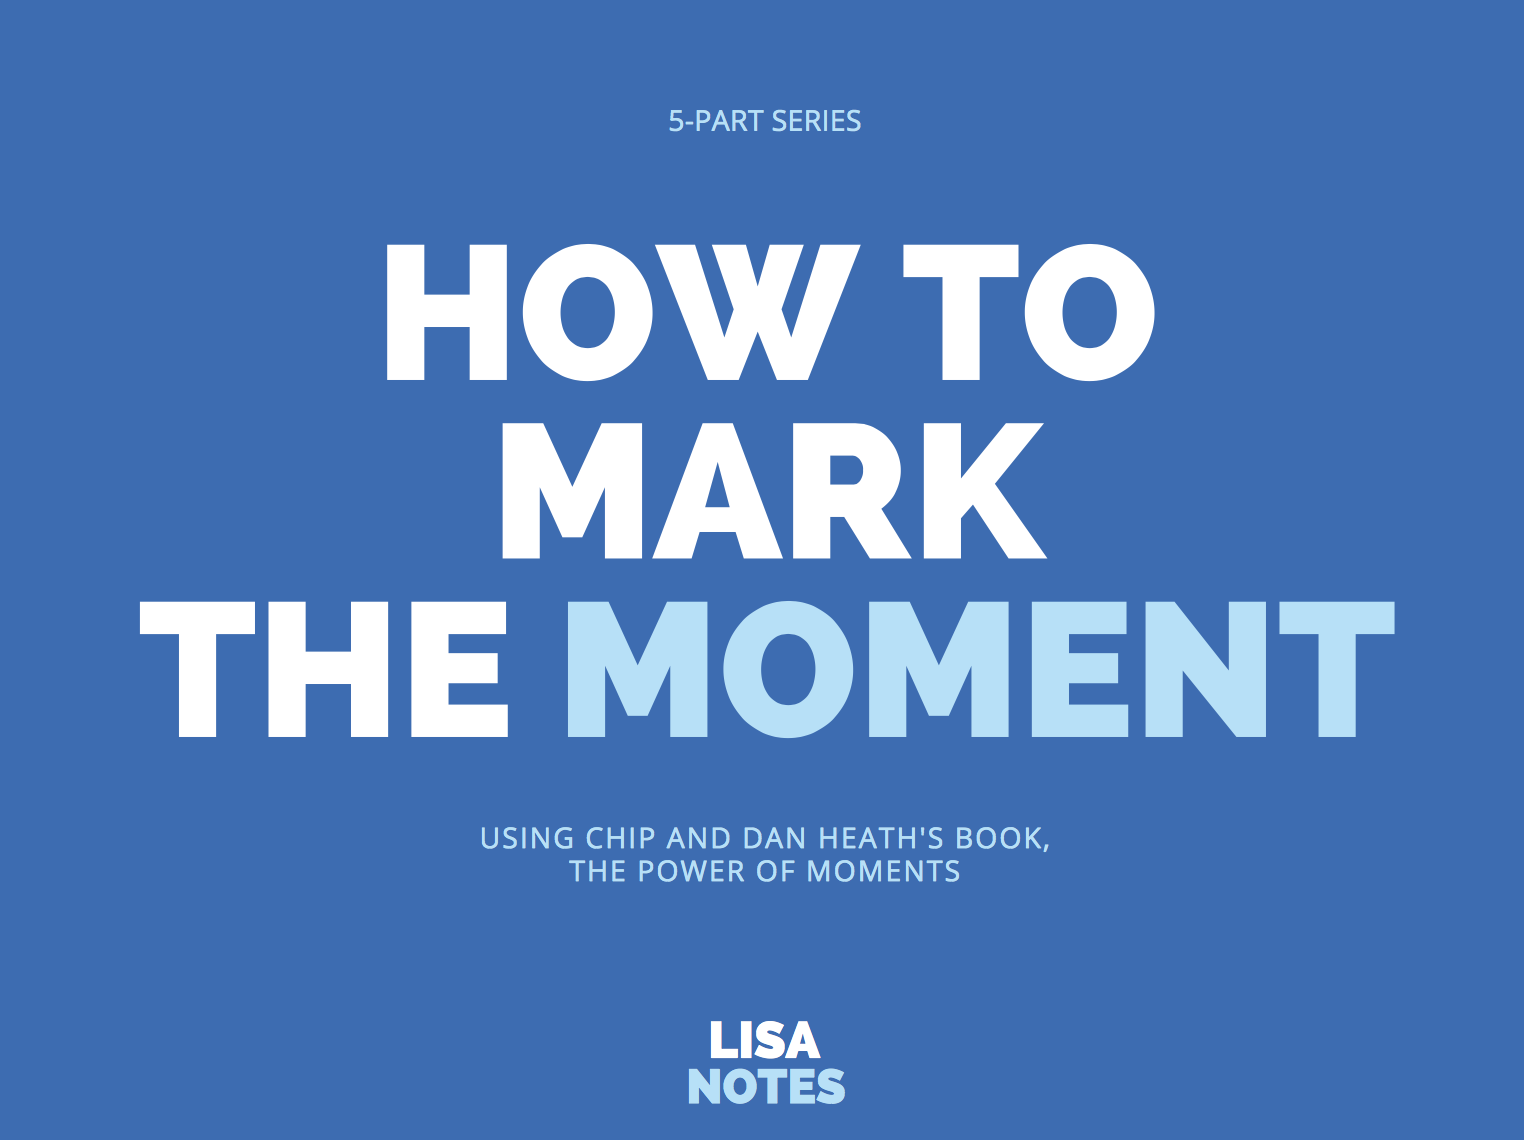 How-to-Mark-the-Moment_Lisanotes